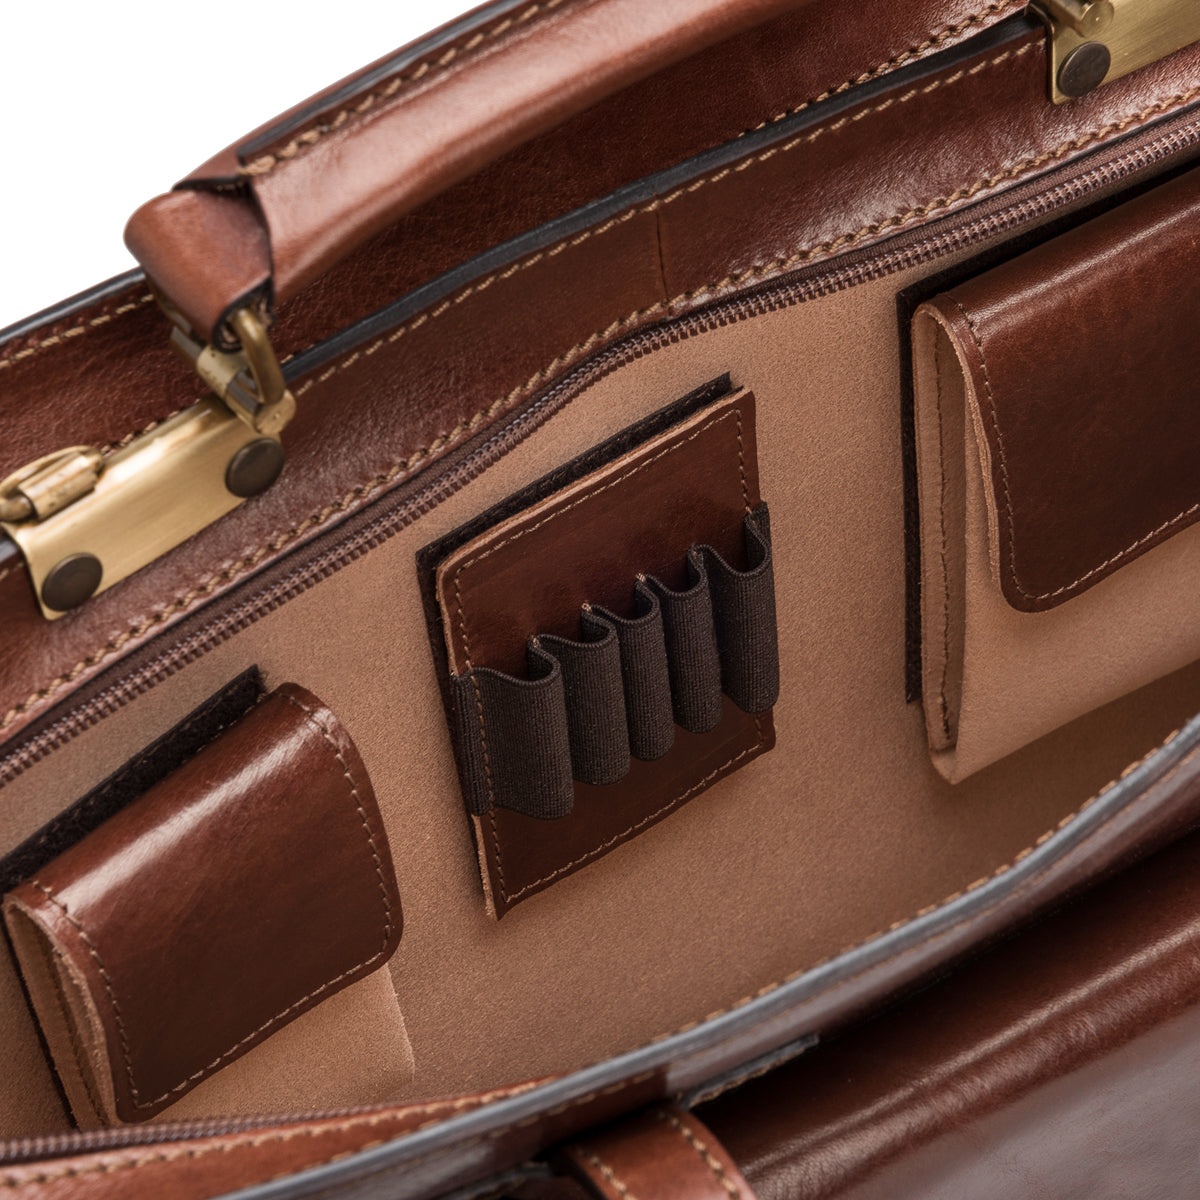 Image 5 of the 'Alanzo' Chestnut Veg-Tanned Leather Briefcase